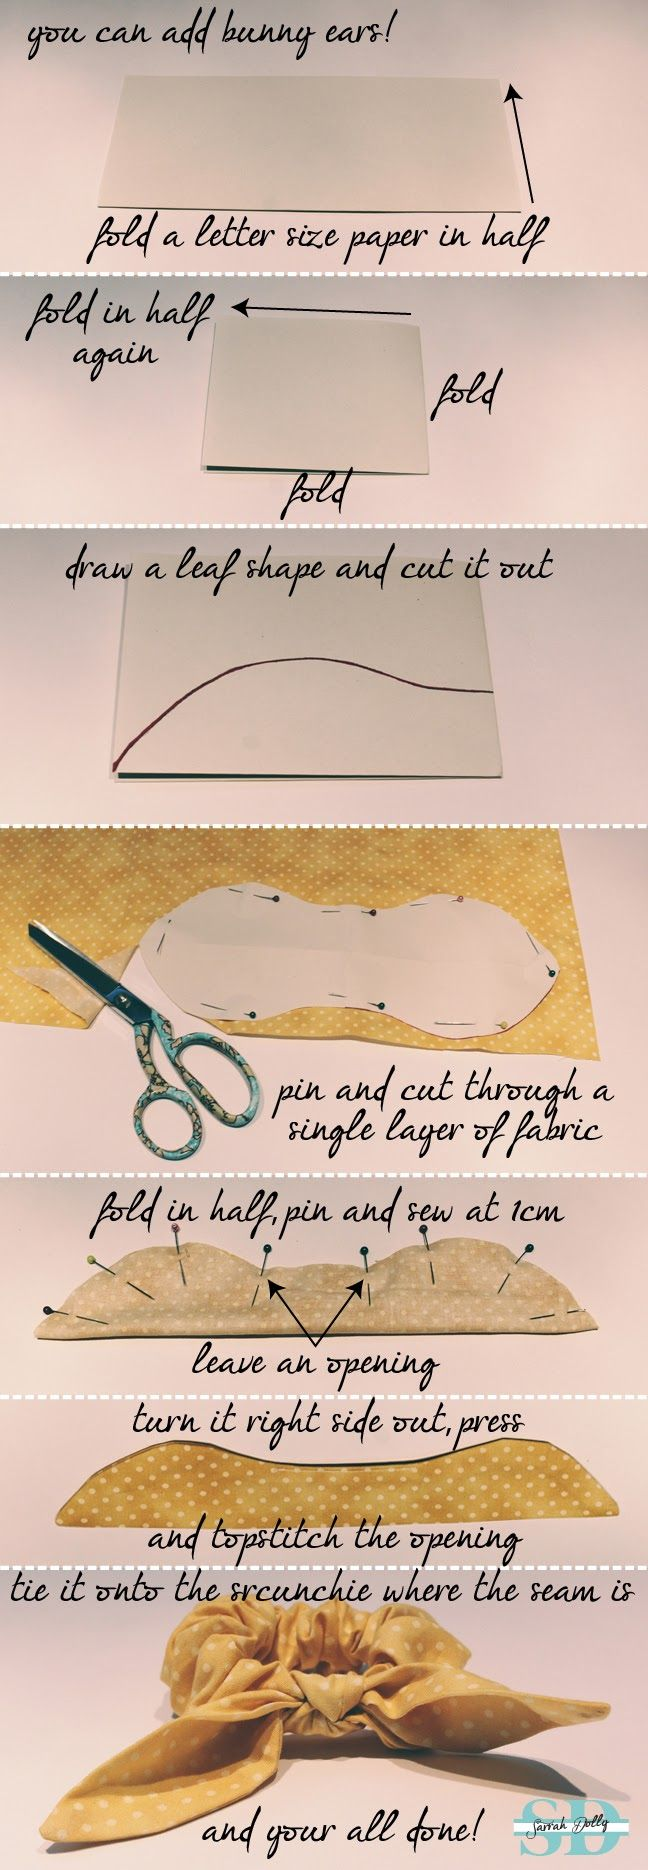 DIY :Scrunchie With Bunny Ears Part 2 #DIY #scrunchie #bunnyears